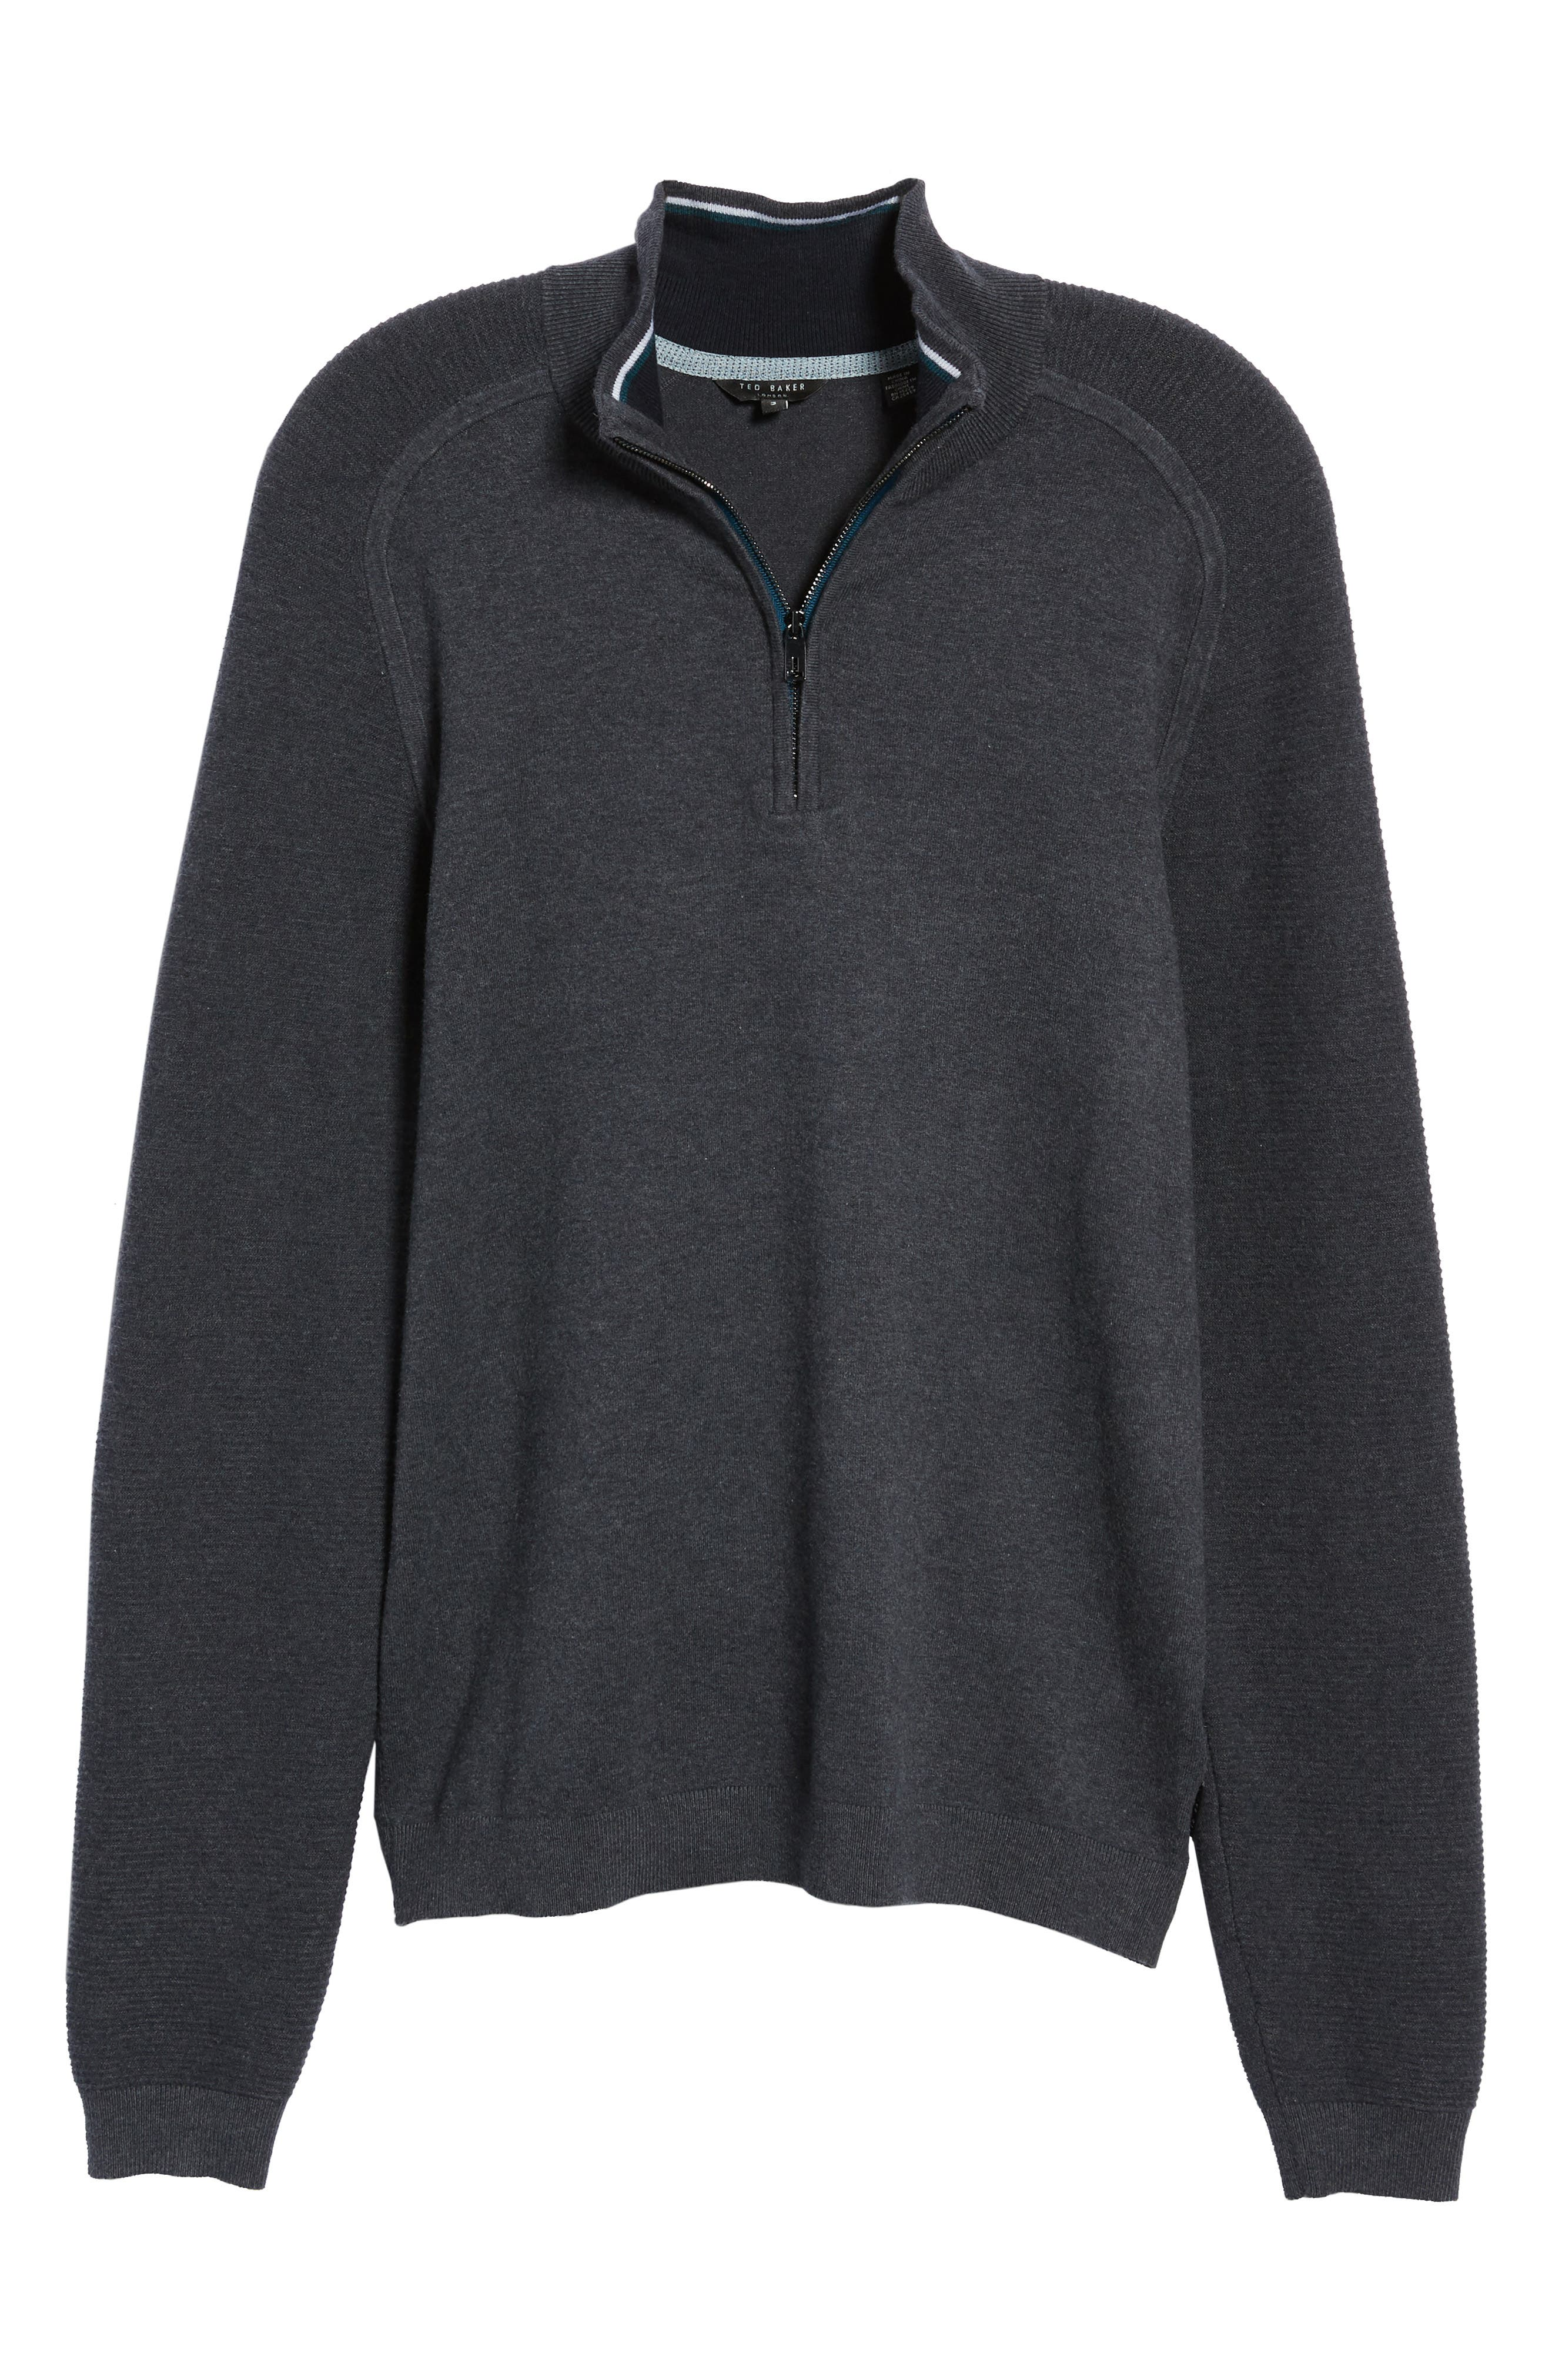 Just Run Trim Fit Funnel Neck Pullover,                             Alternate thumbnail 6, color,                             CHARCOAL